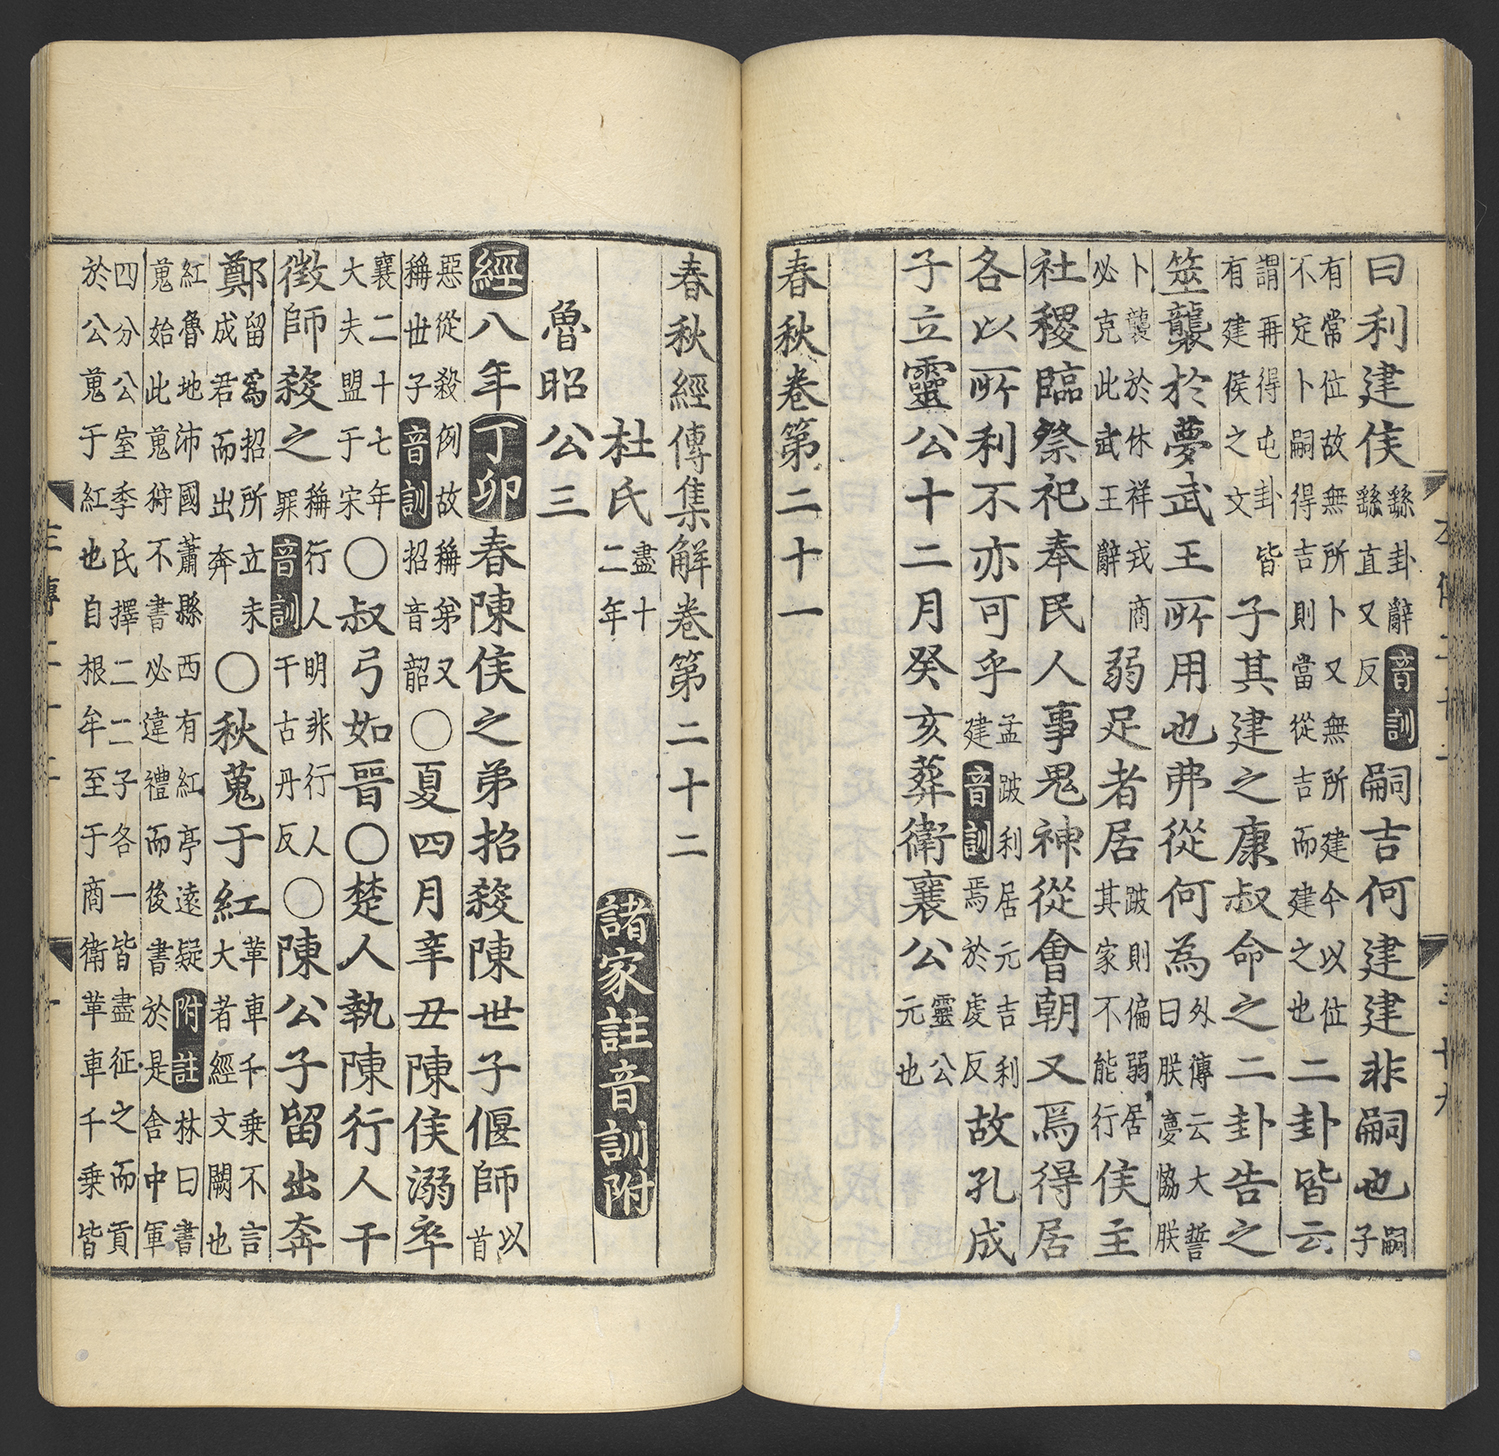 Collected commentaries on the 'Spring and autumn annals' - Ch'unch'u kyŏngjŏn chiphae, Seol, 1434